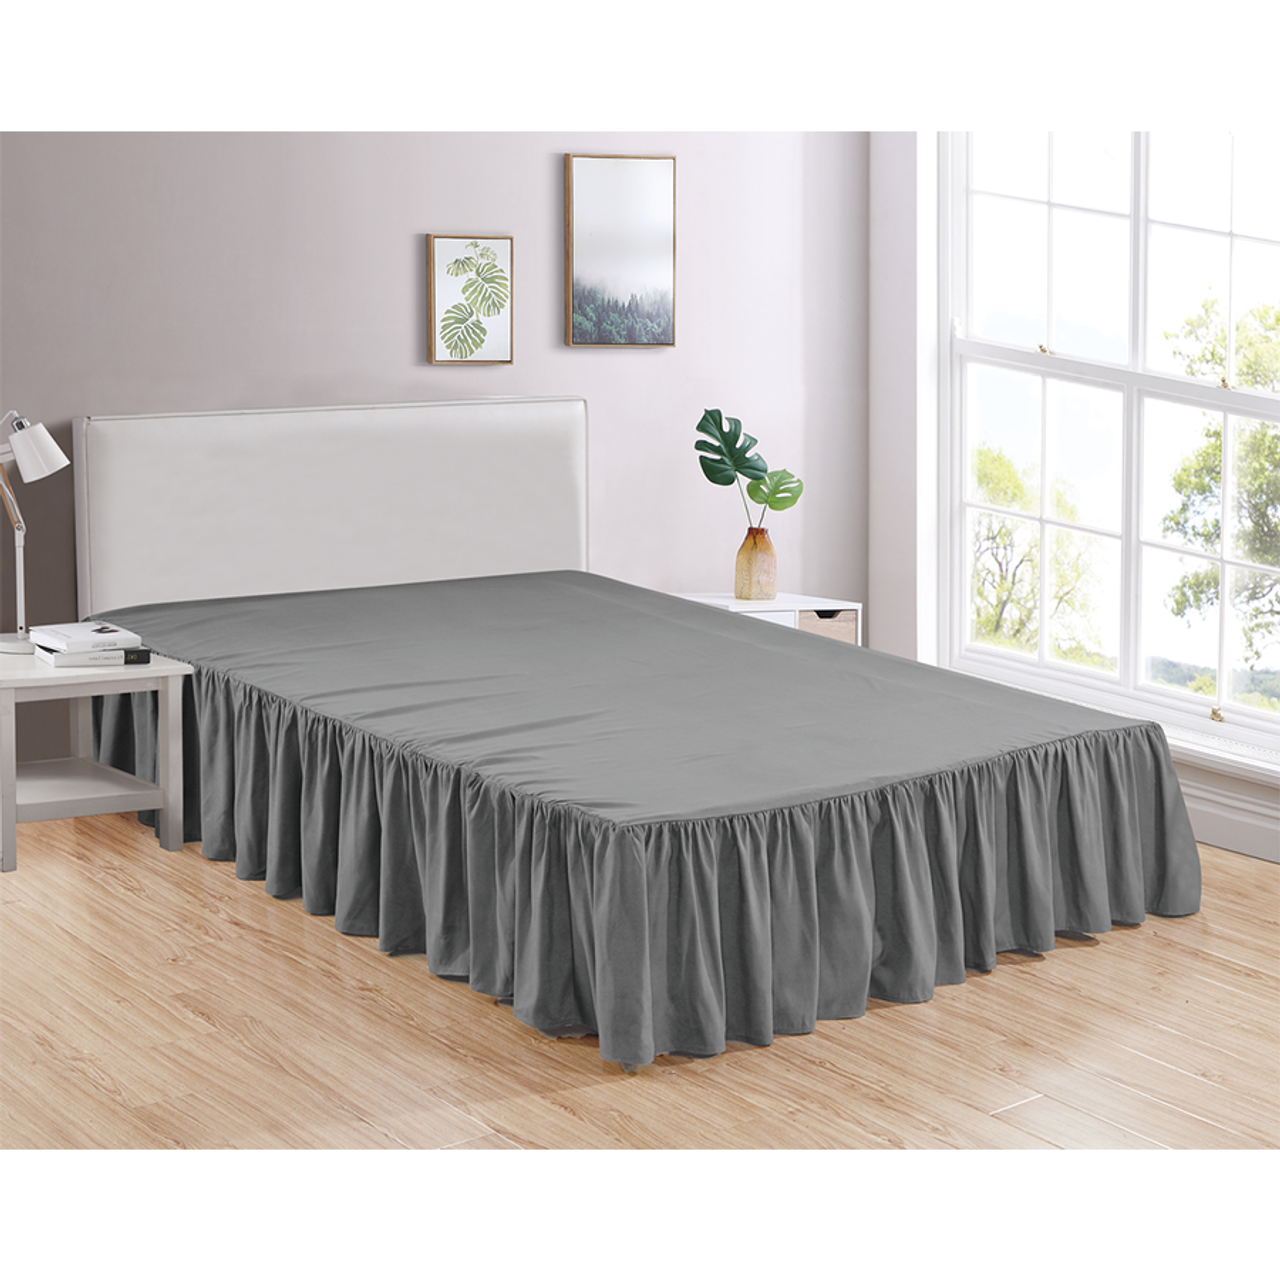 Bed Skirt Soft Dust Ruffle 100 Brushed Microfiber With 14 Drop Legacy Decor